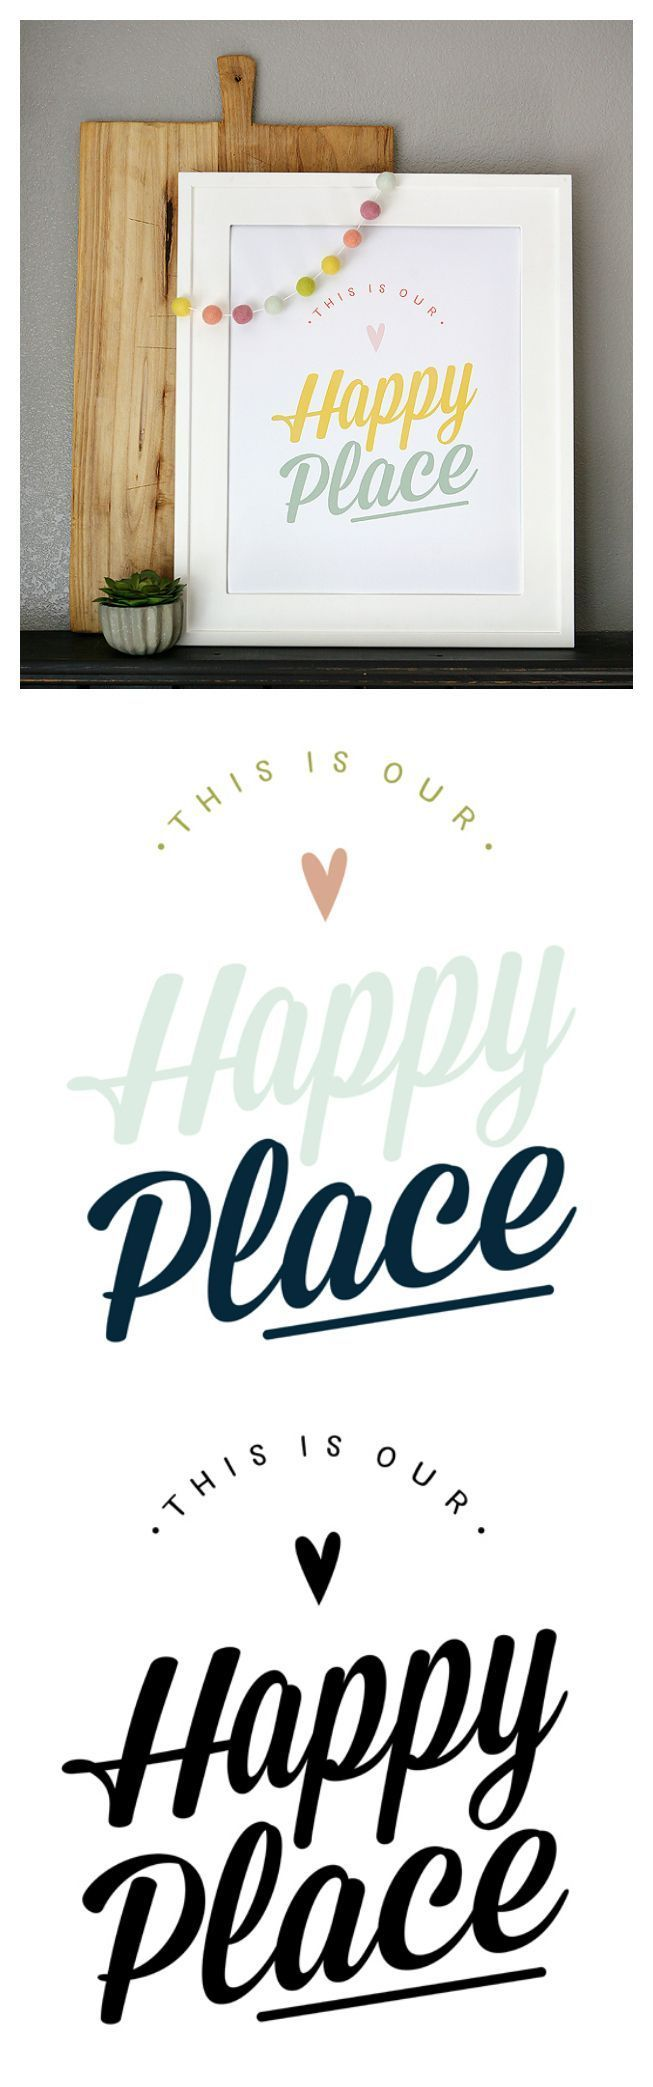 This Is Our Happy Place Print   Comes in 3 different colors and you can download it for free!